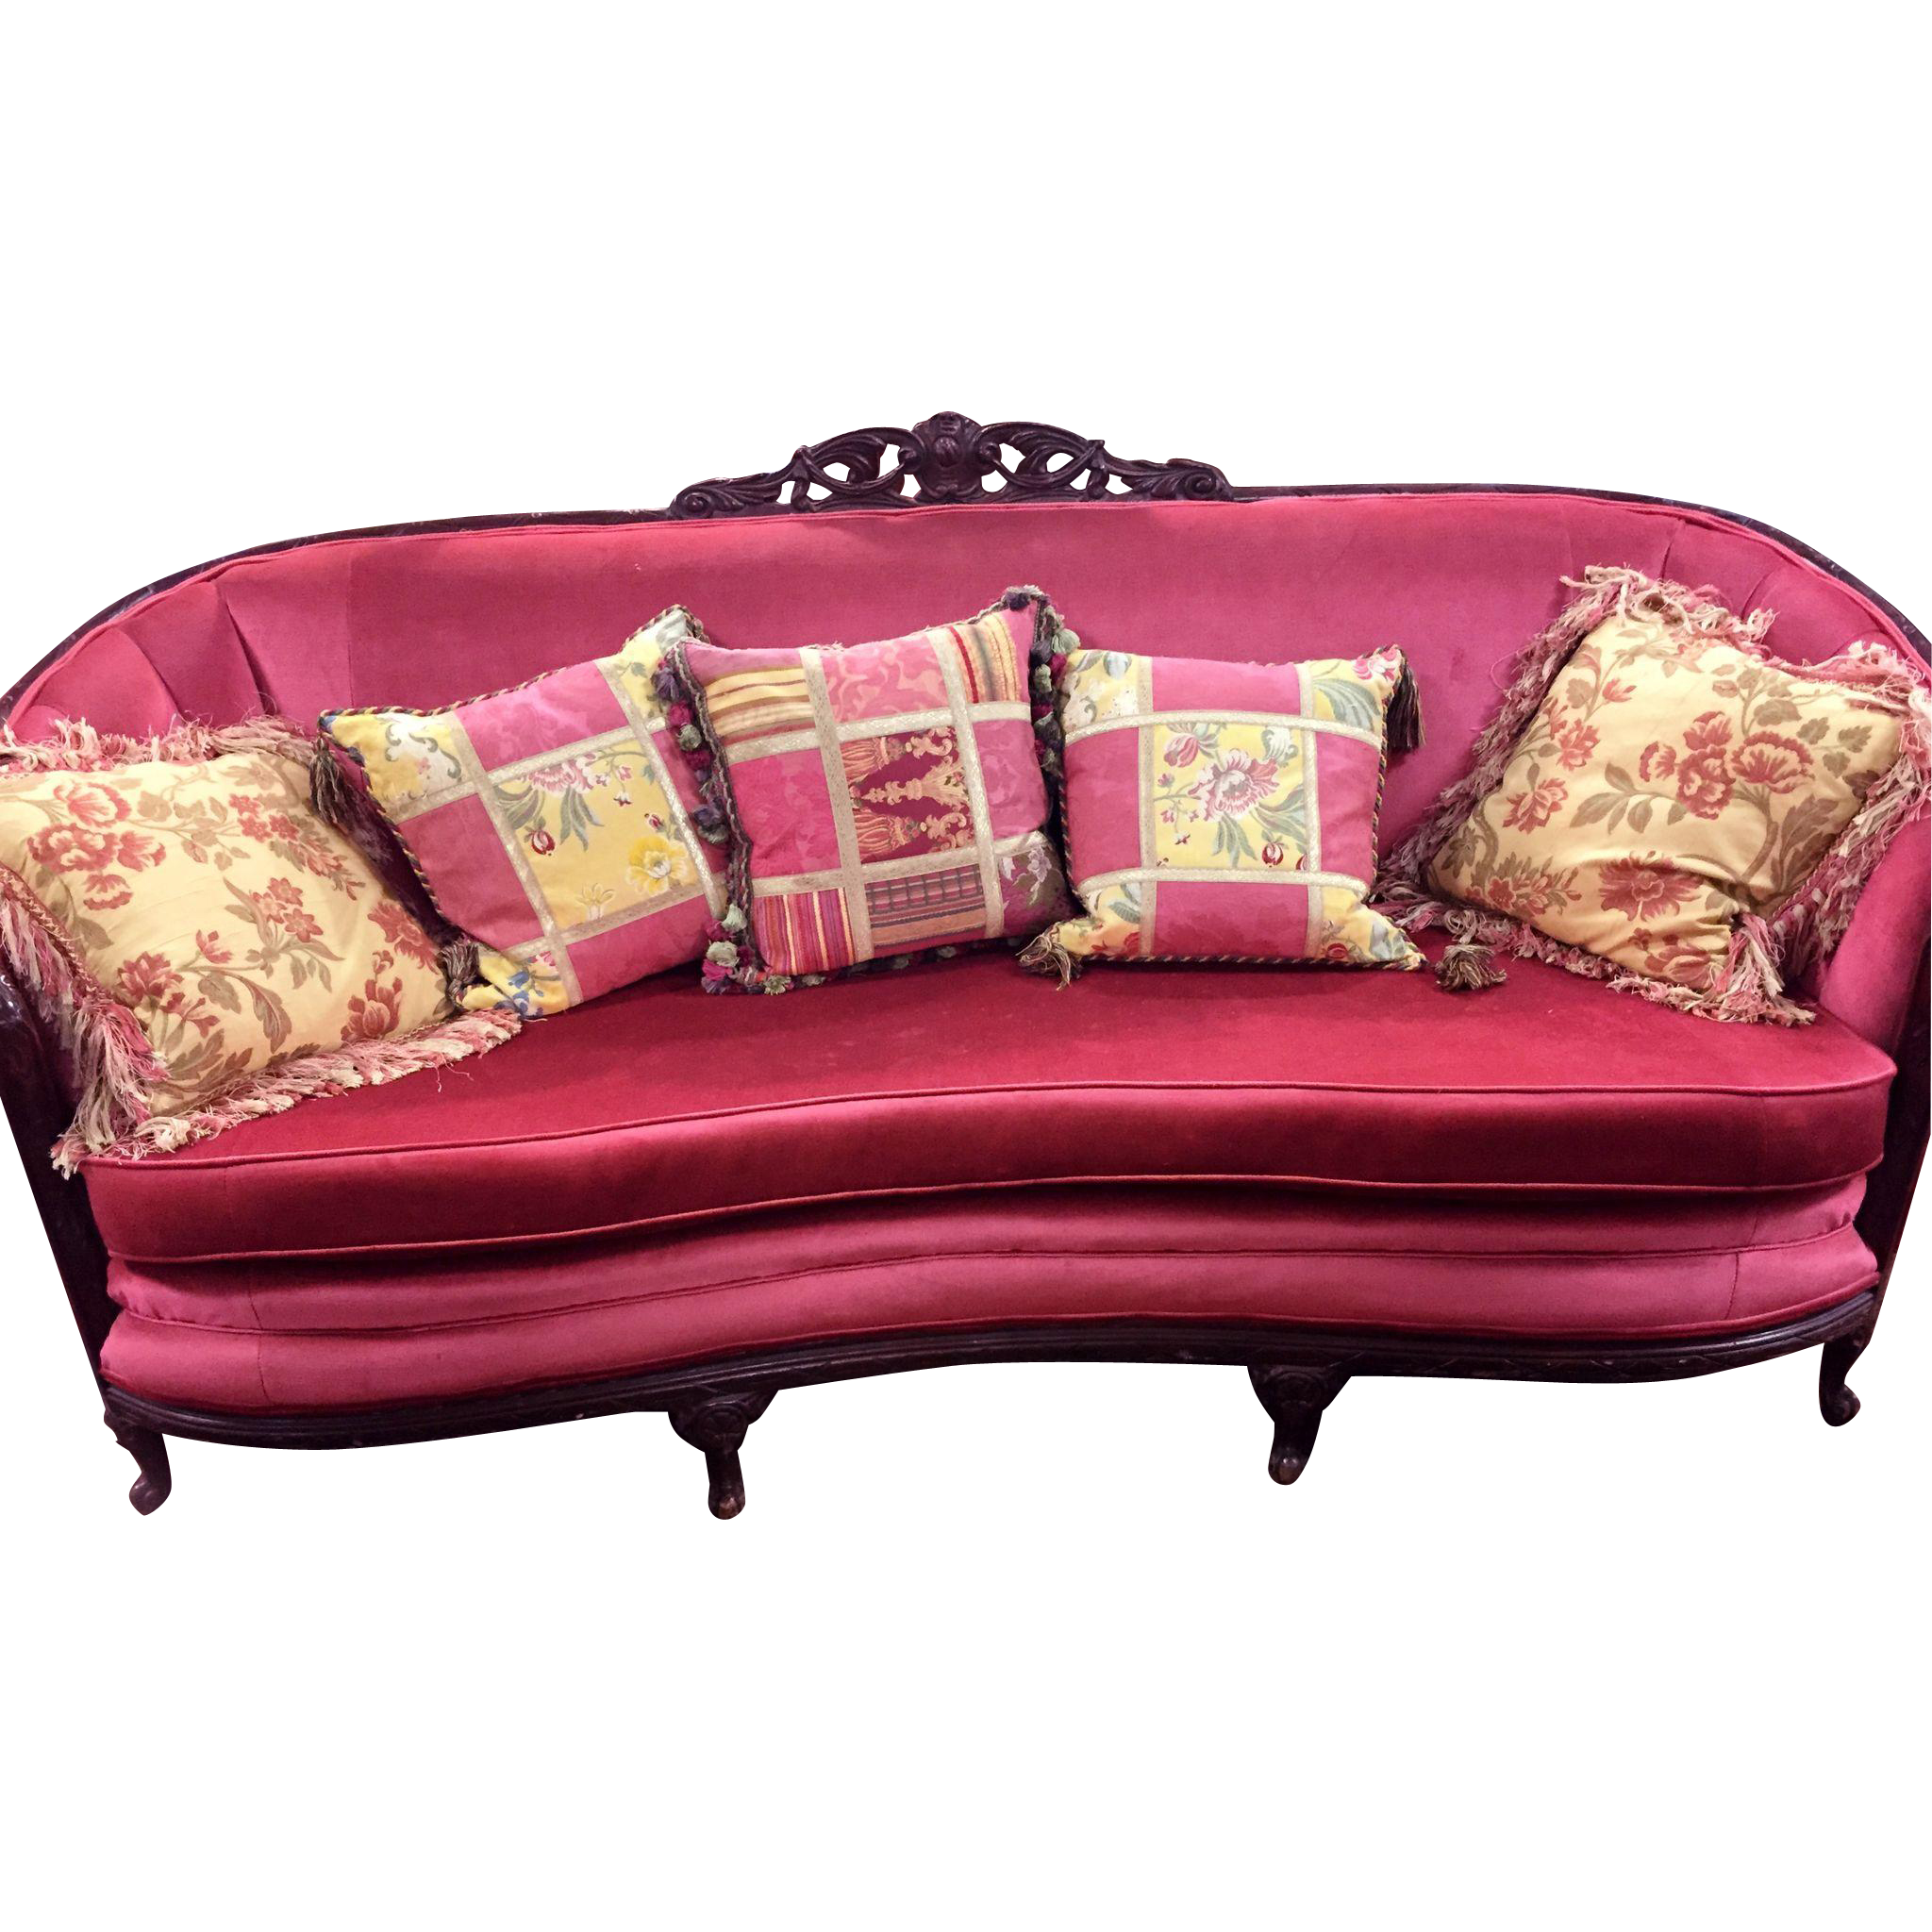 Exquisite Circa 1920 Original French/Italian Mahogany Sofa Great Raspberry  Rose Velvet Upholstery